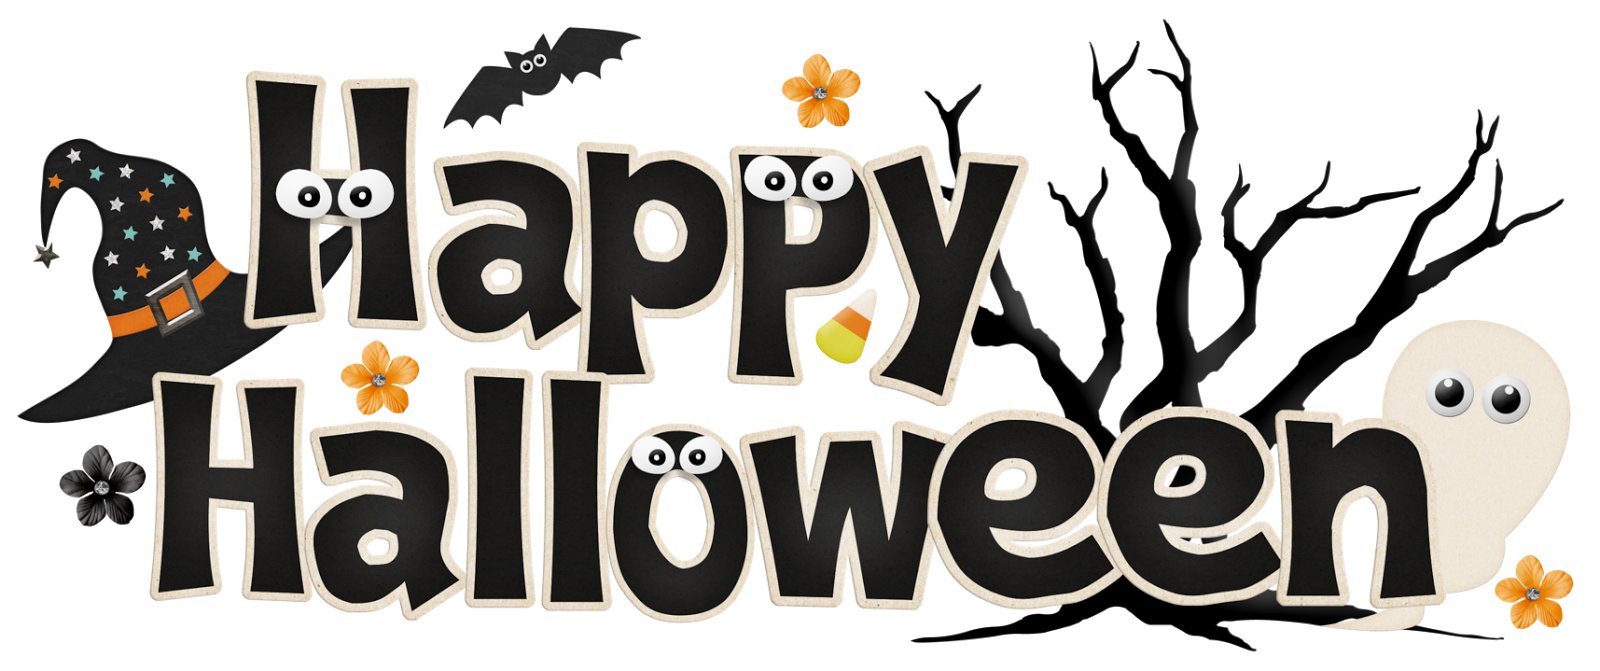 Halloween school clipart svg library library 5 Tips to Throwing an Unforgettable Adult Halloween Party svg library library